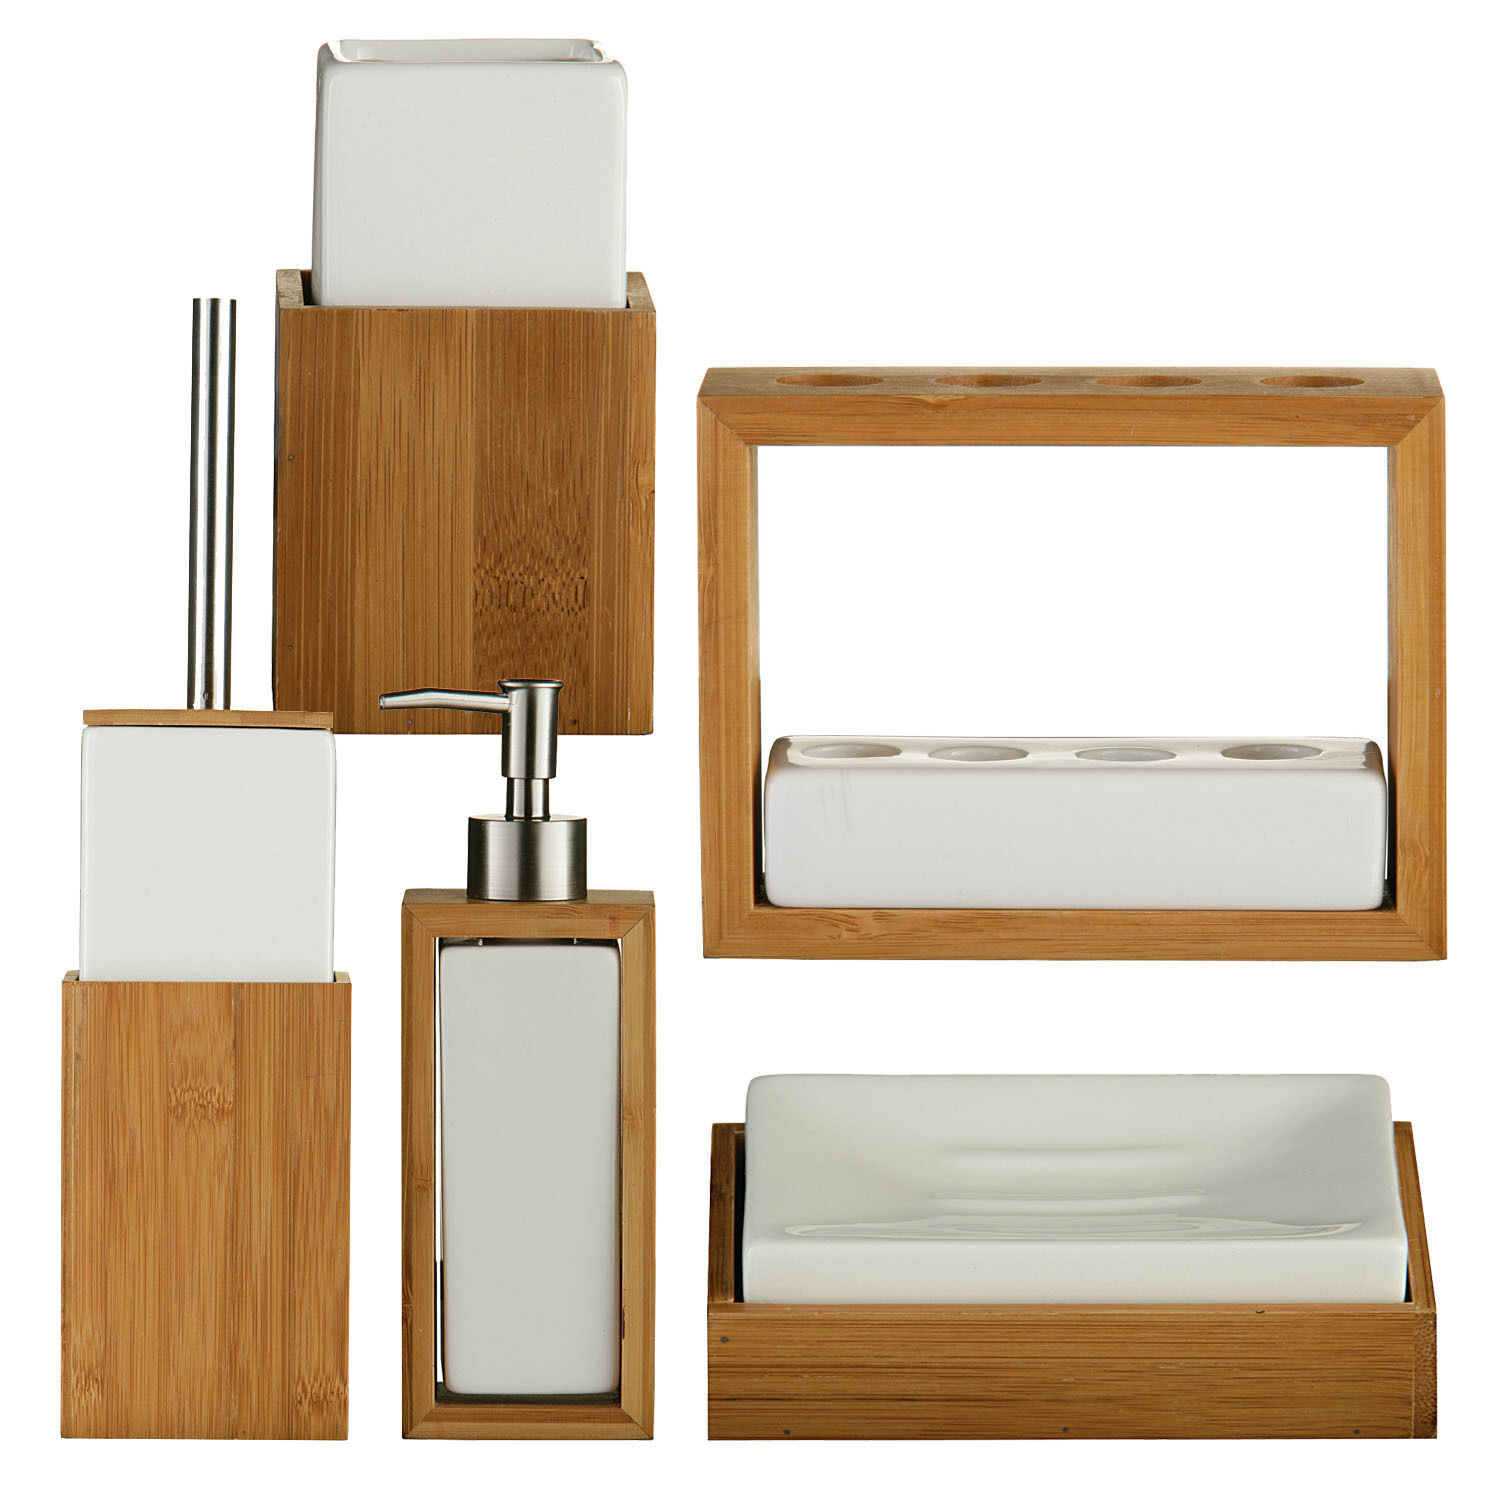 white bathroom accessories uk wood bathroom accessories crowdbuild for - Wooden Bathroom Accessories Uk